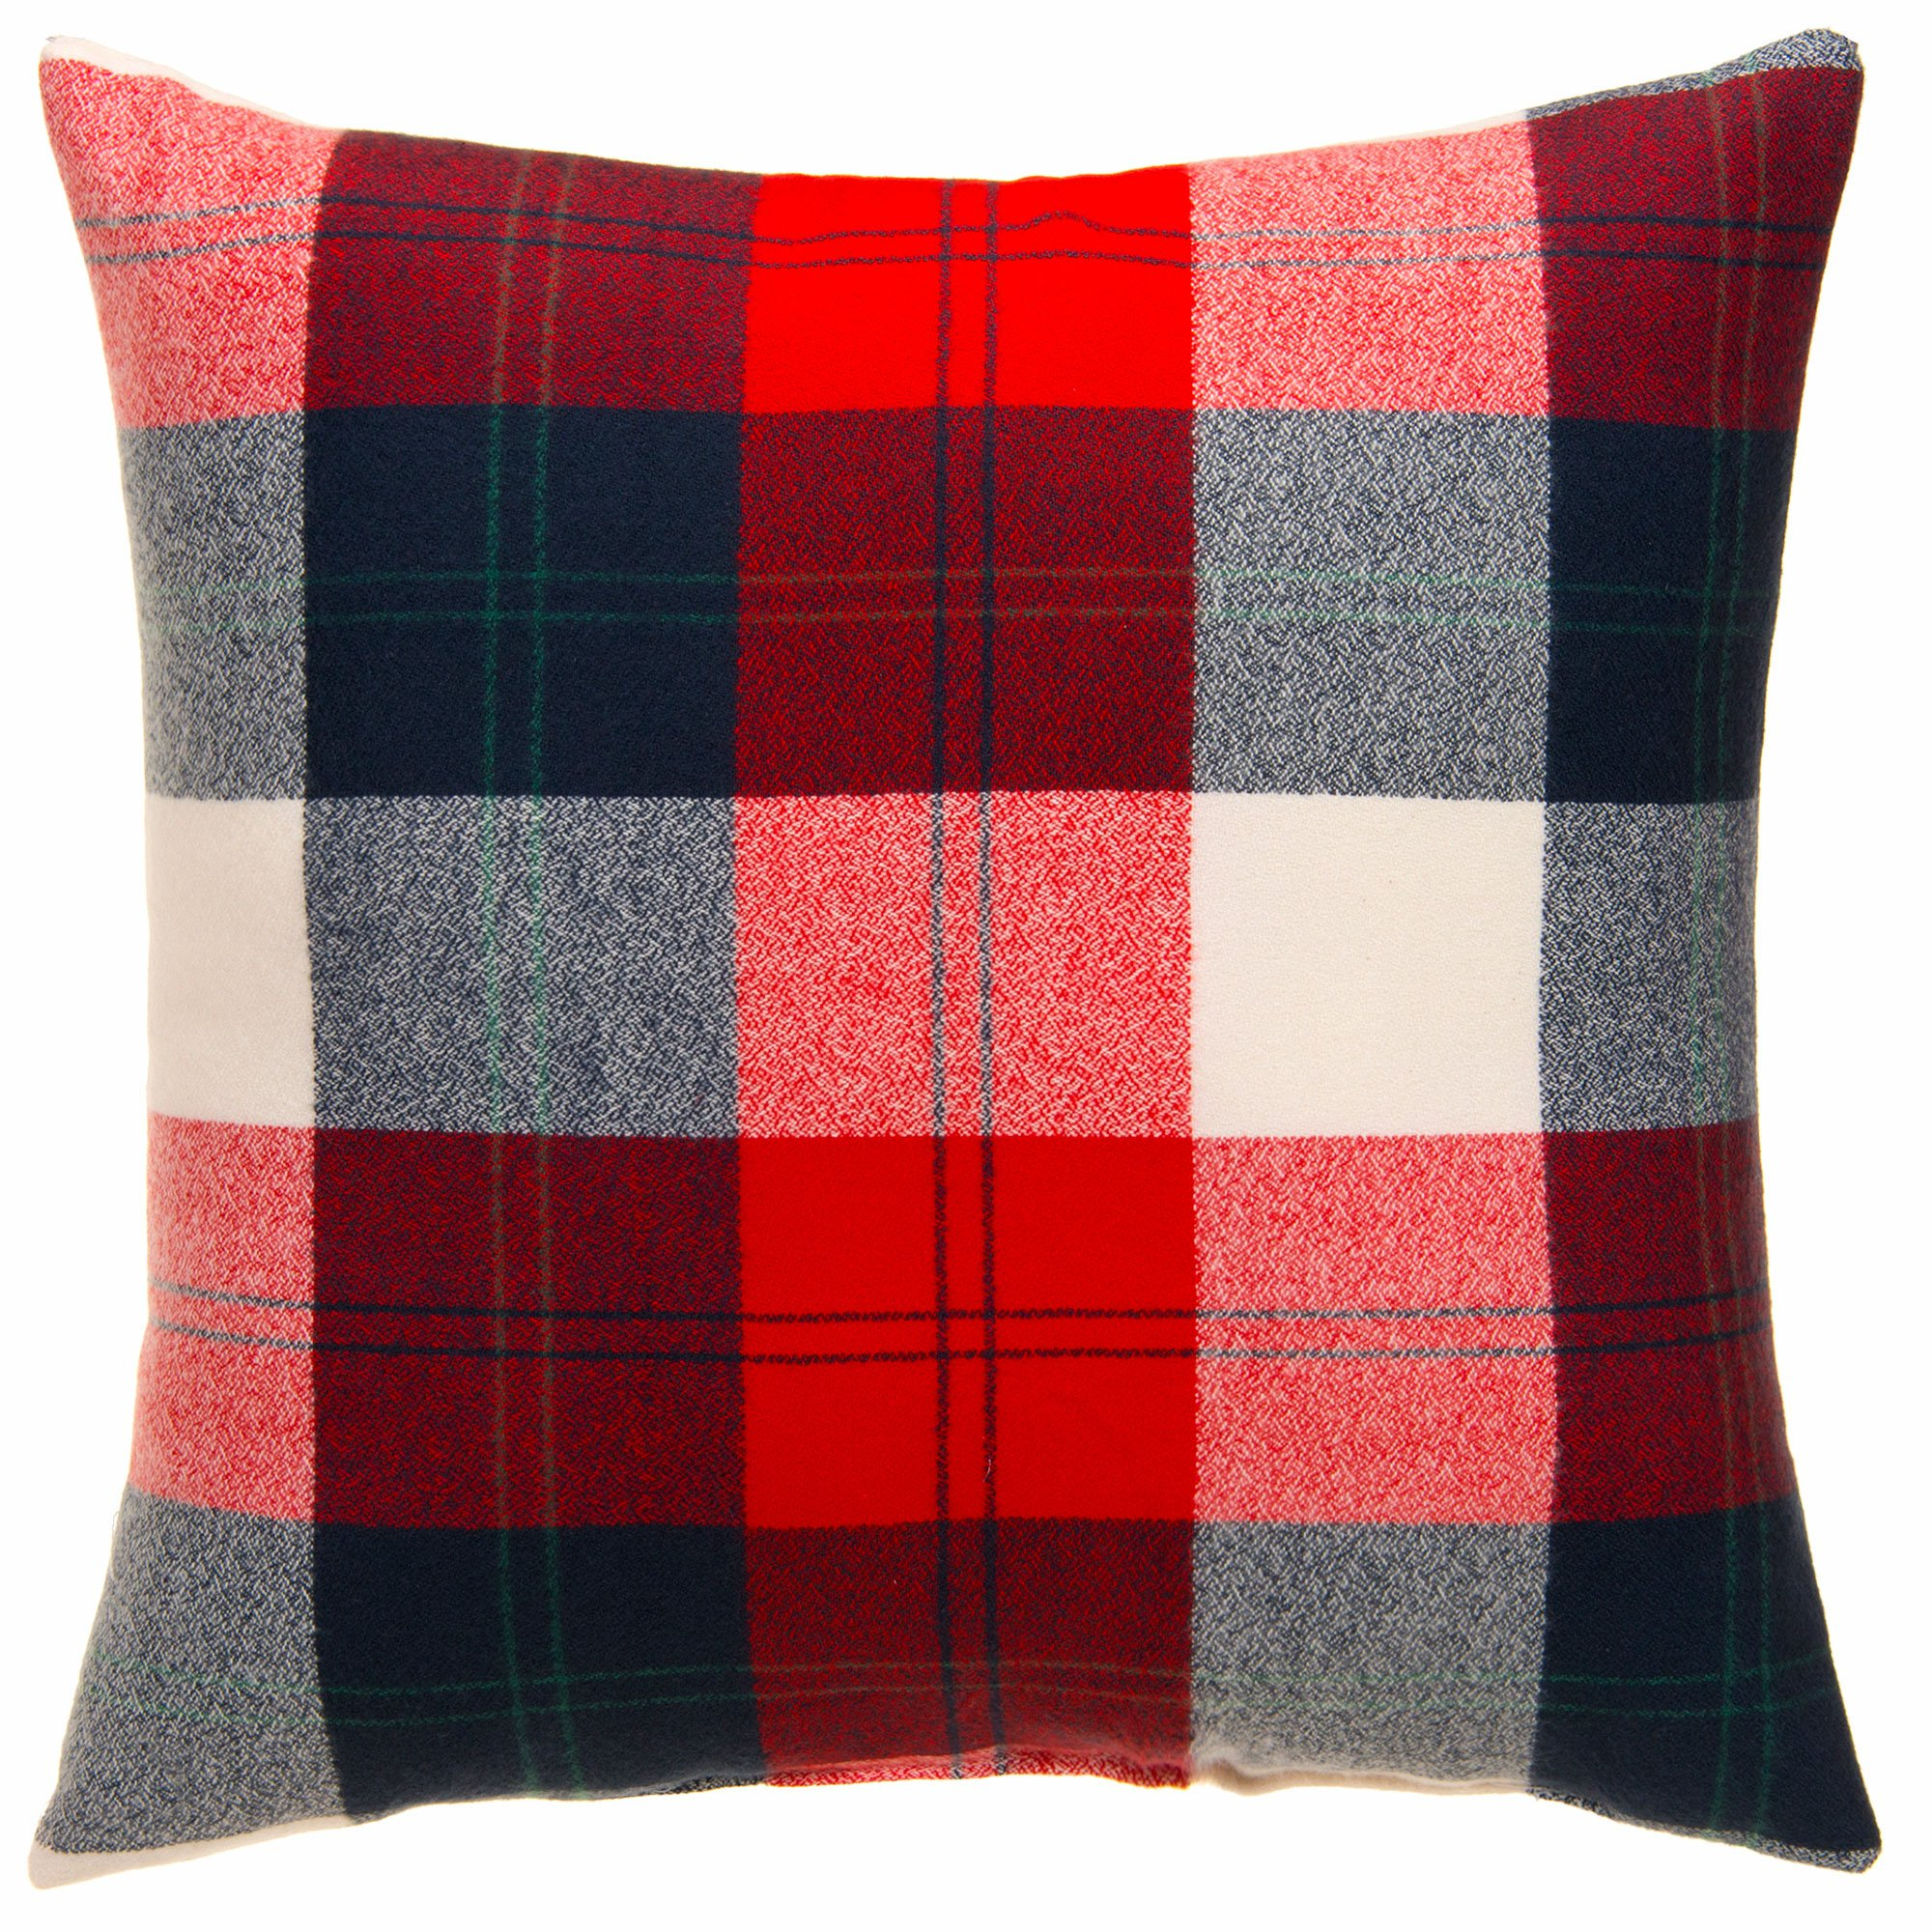 Camp River Rock Navy and Red Plaid Throw Pillow by Glenna Jean by Glenna Jean (Image #1)